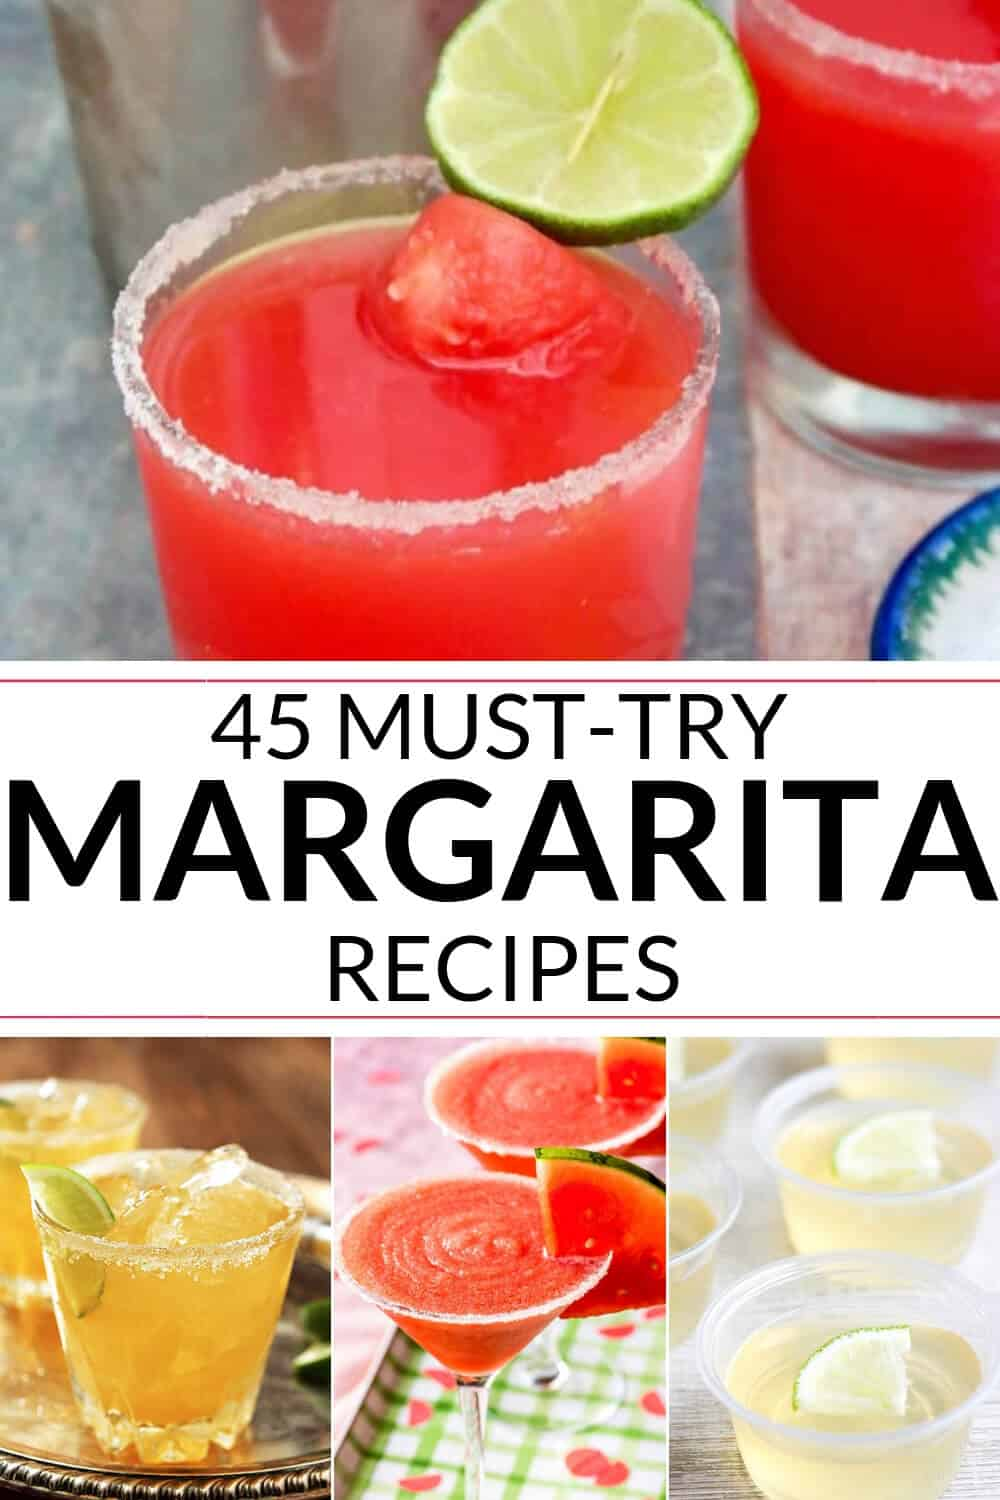 COLLECTION OF MUST TRY MARGARITA RECIPES